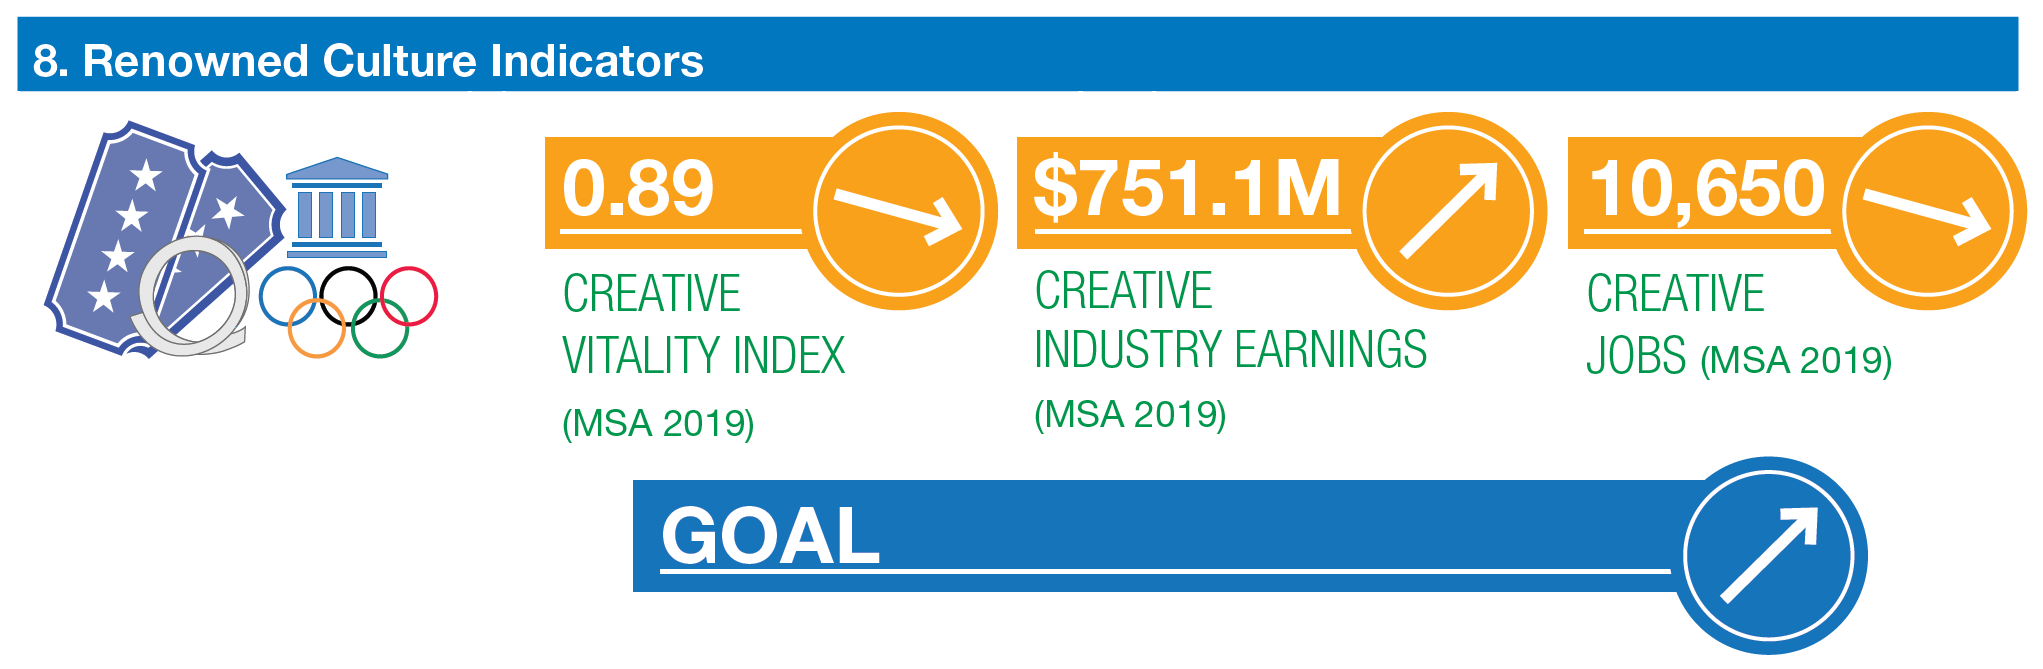 renowned culture indicators. creative vitality index .89 trending slightly down. creative industry earnings %751.1m trending up. creative jobs 10,650 trending slightly down. goal for all to increase